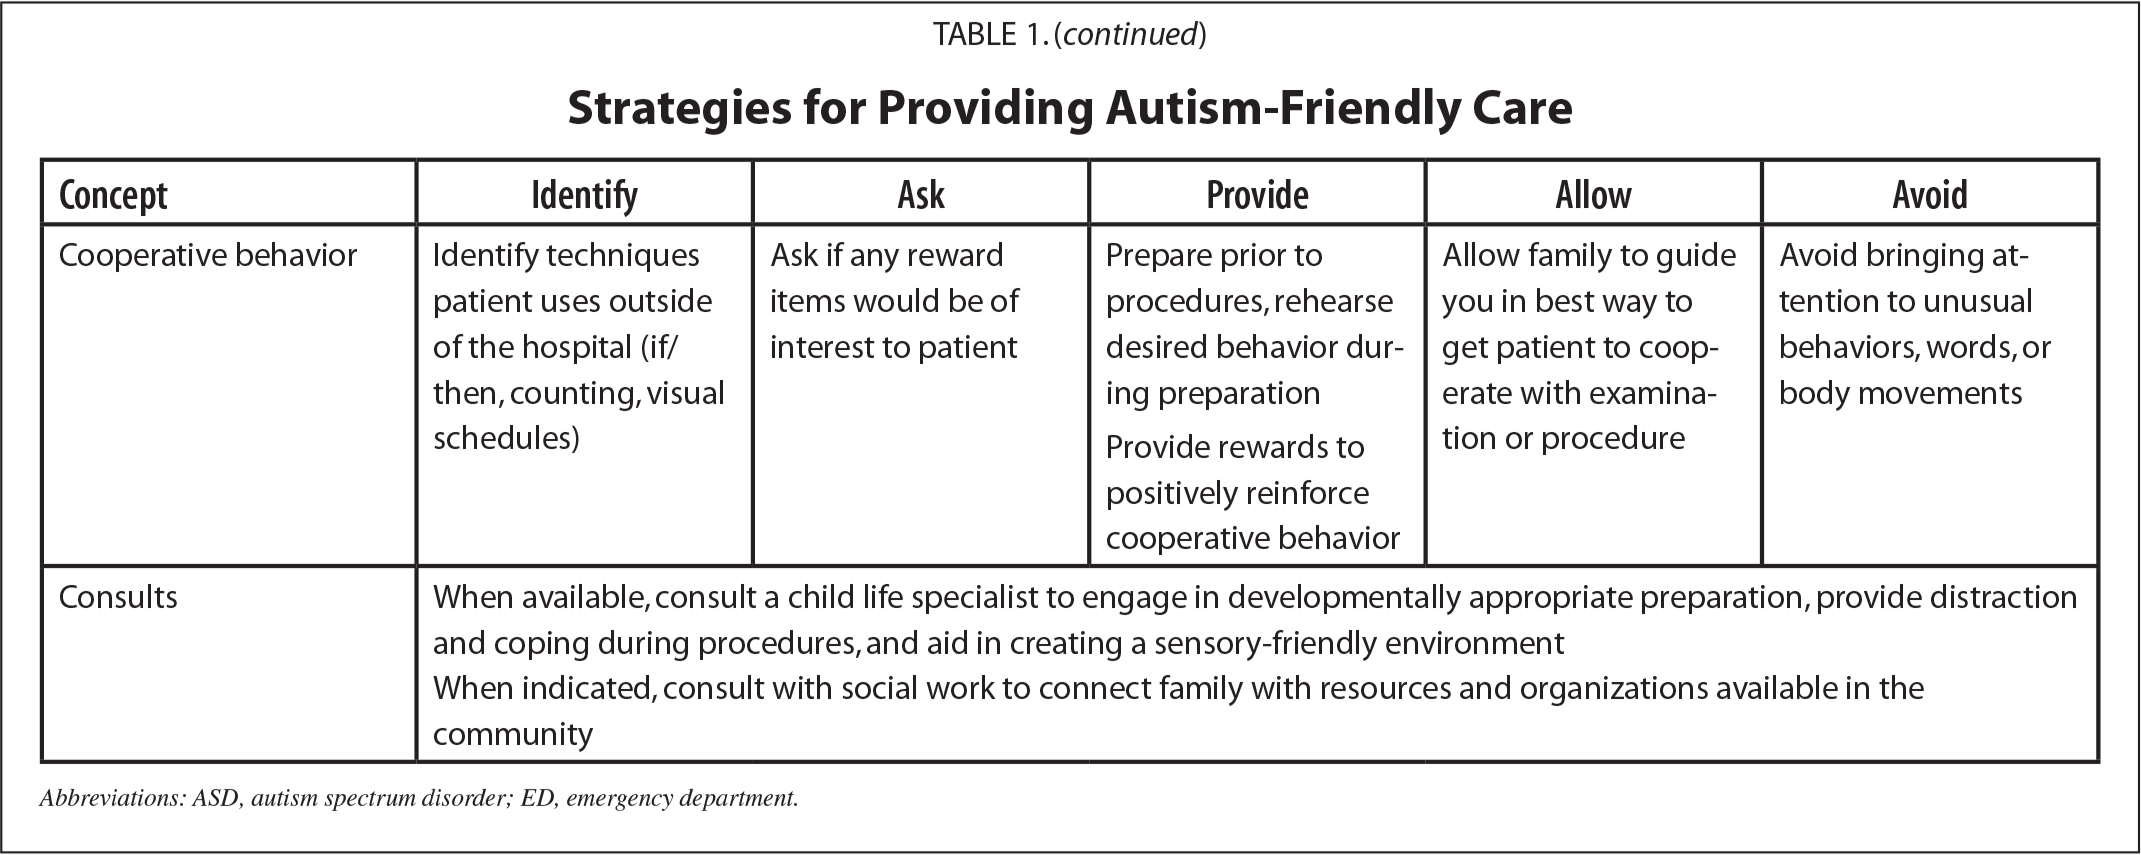 Strategies for Providing Autism-Friendly Care